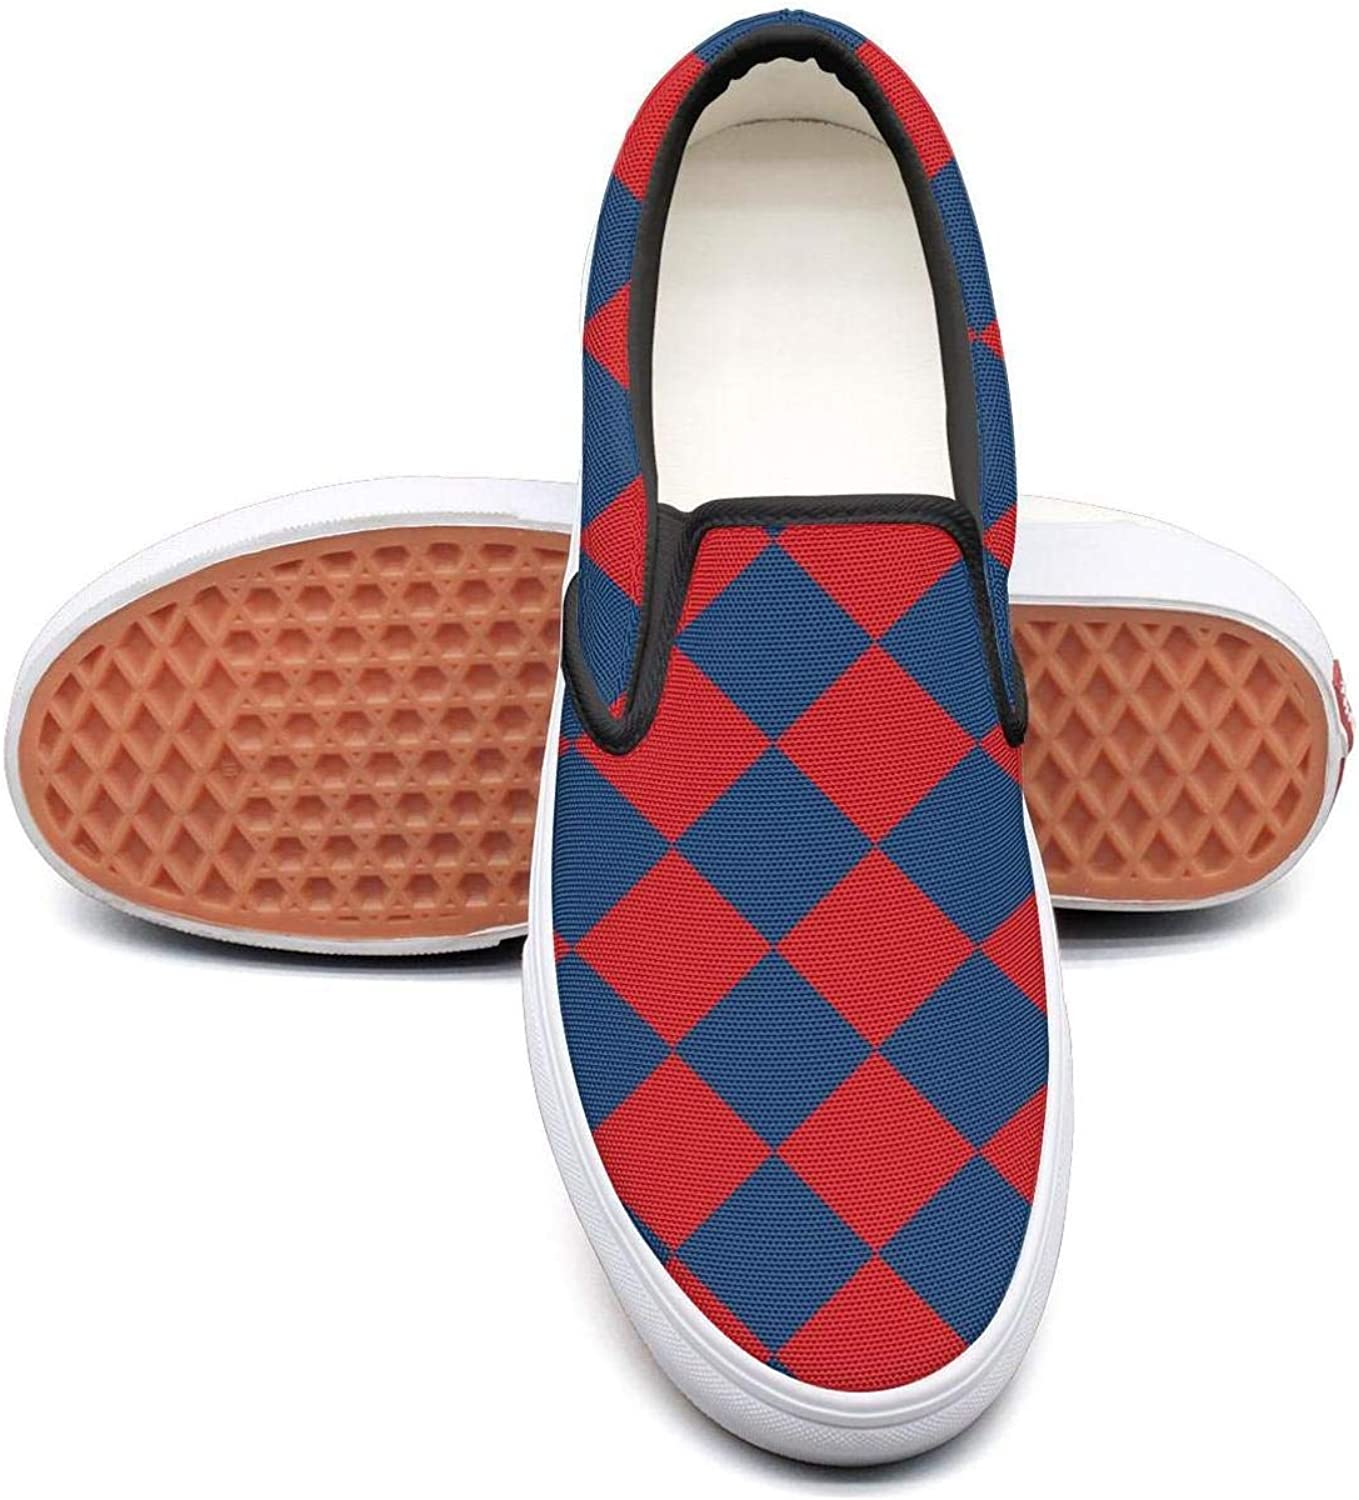 bluee Red Chess Board Diamond Slip On Rubber Sole Sneakers Canvas shoes for Women Casual